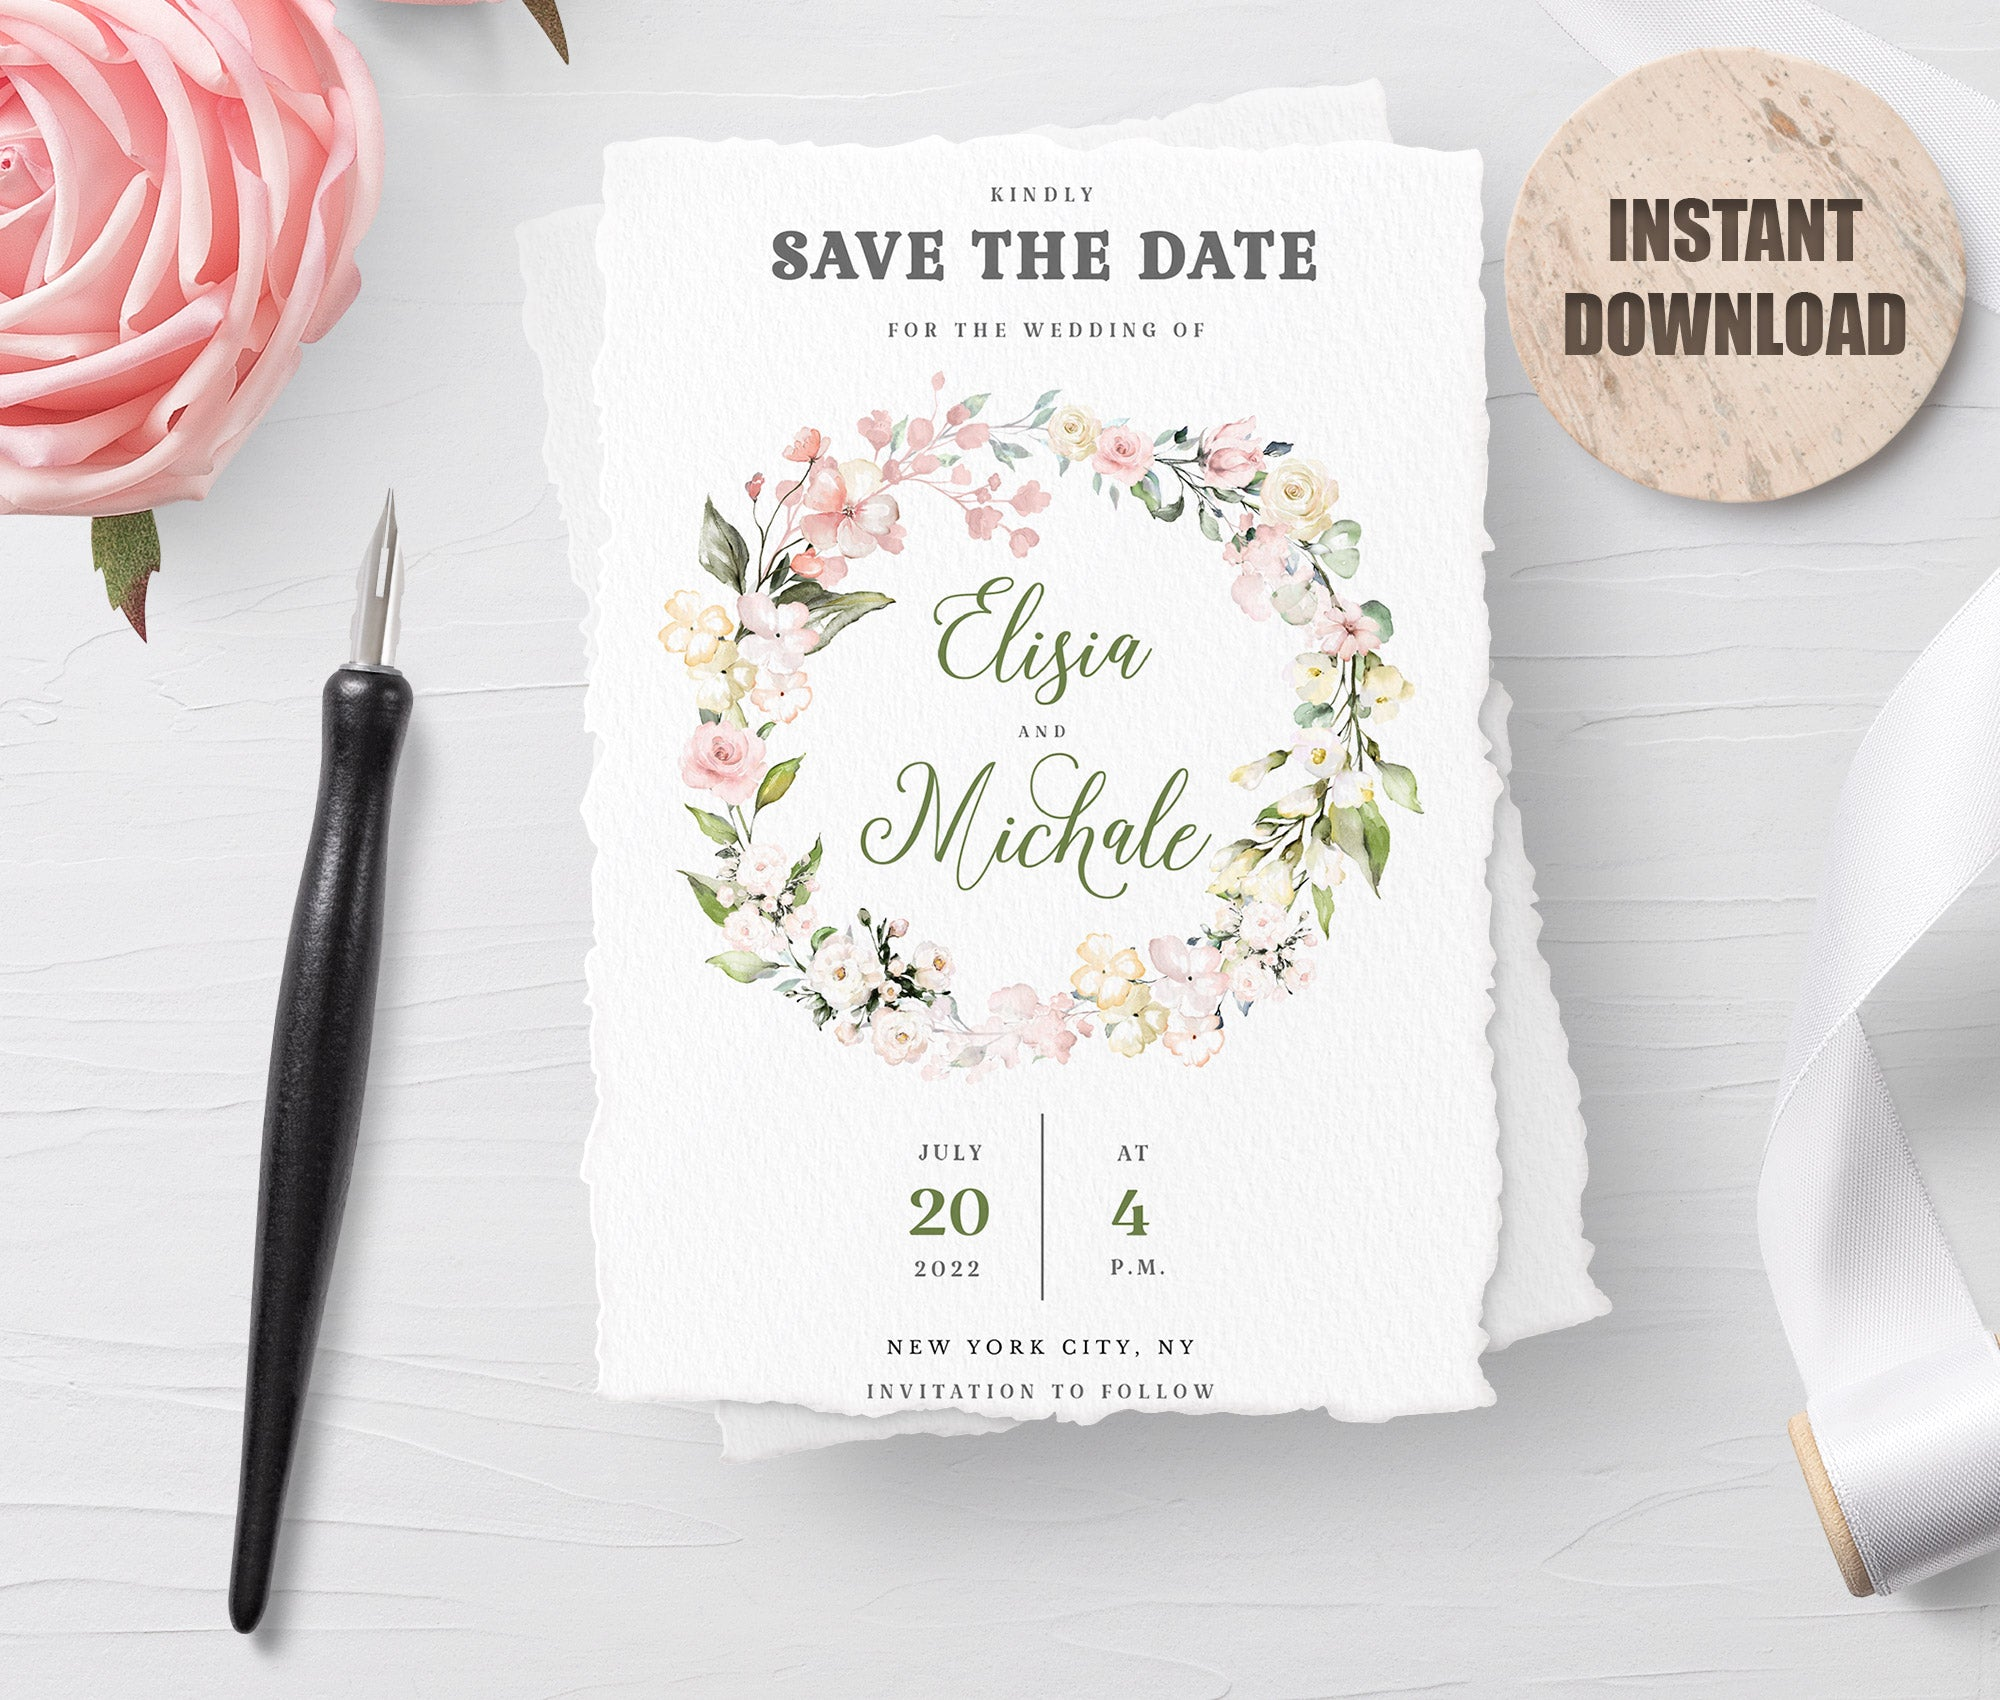 LOVAL Printable Save the Date Card set 6